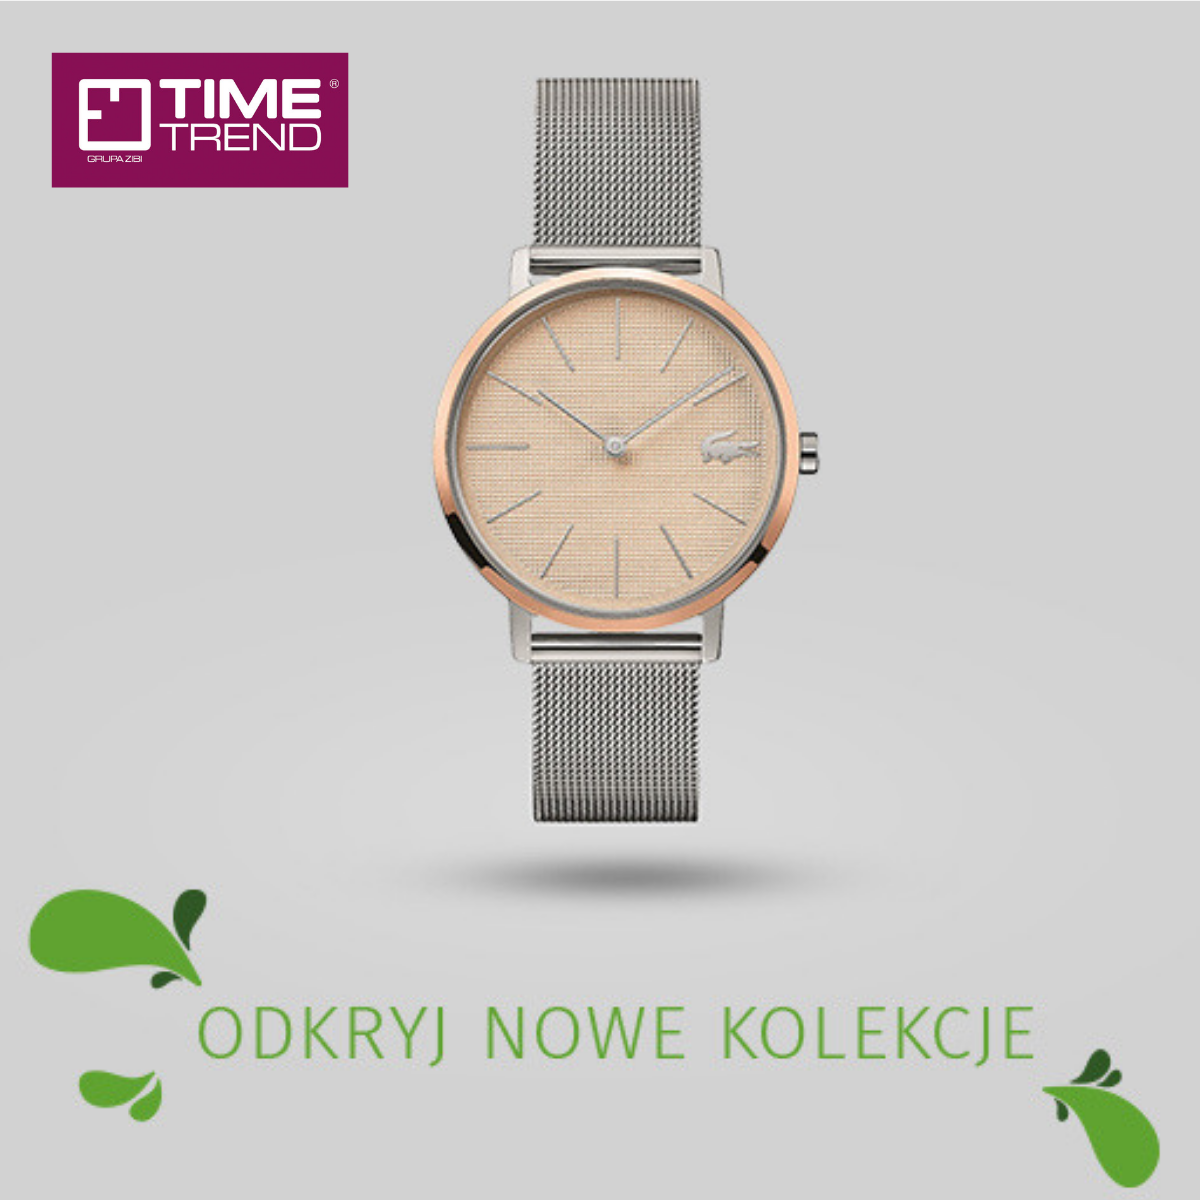 New watches collection in Time Trend